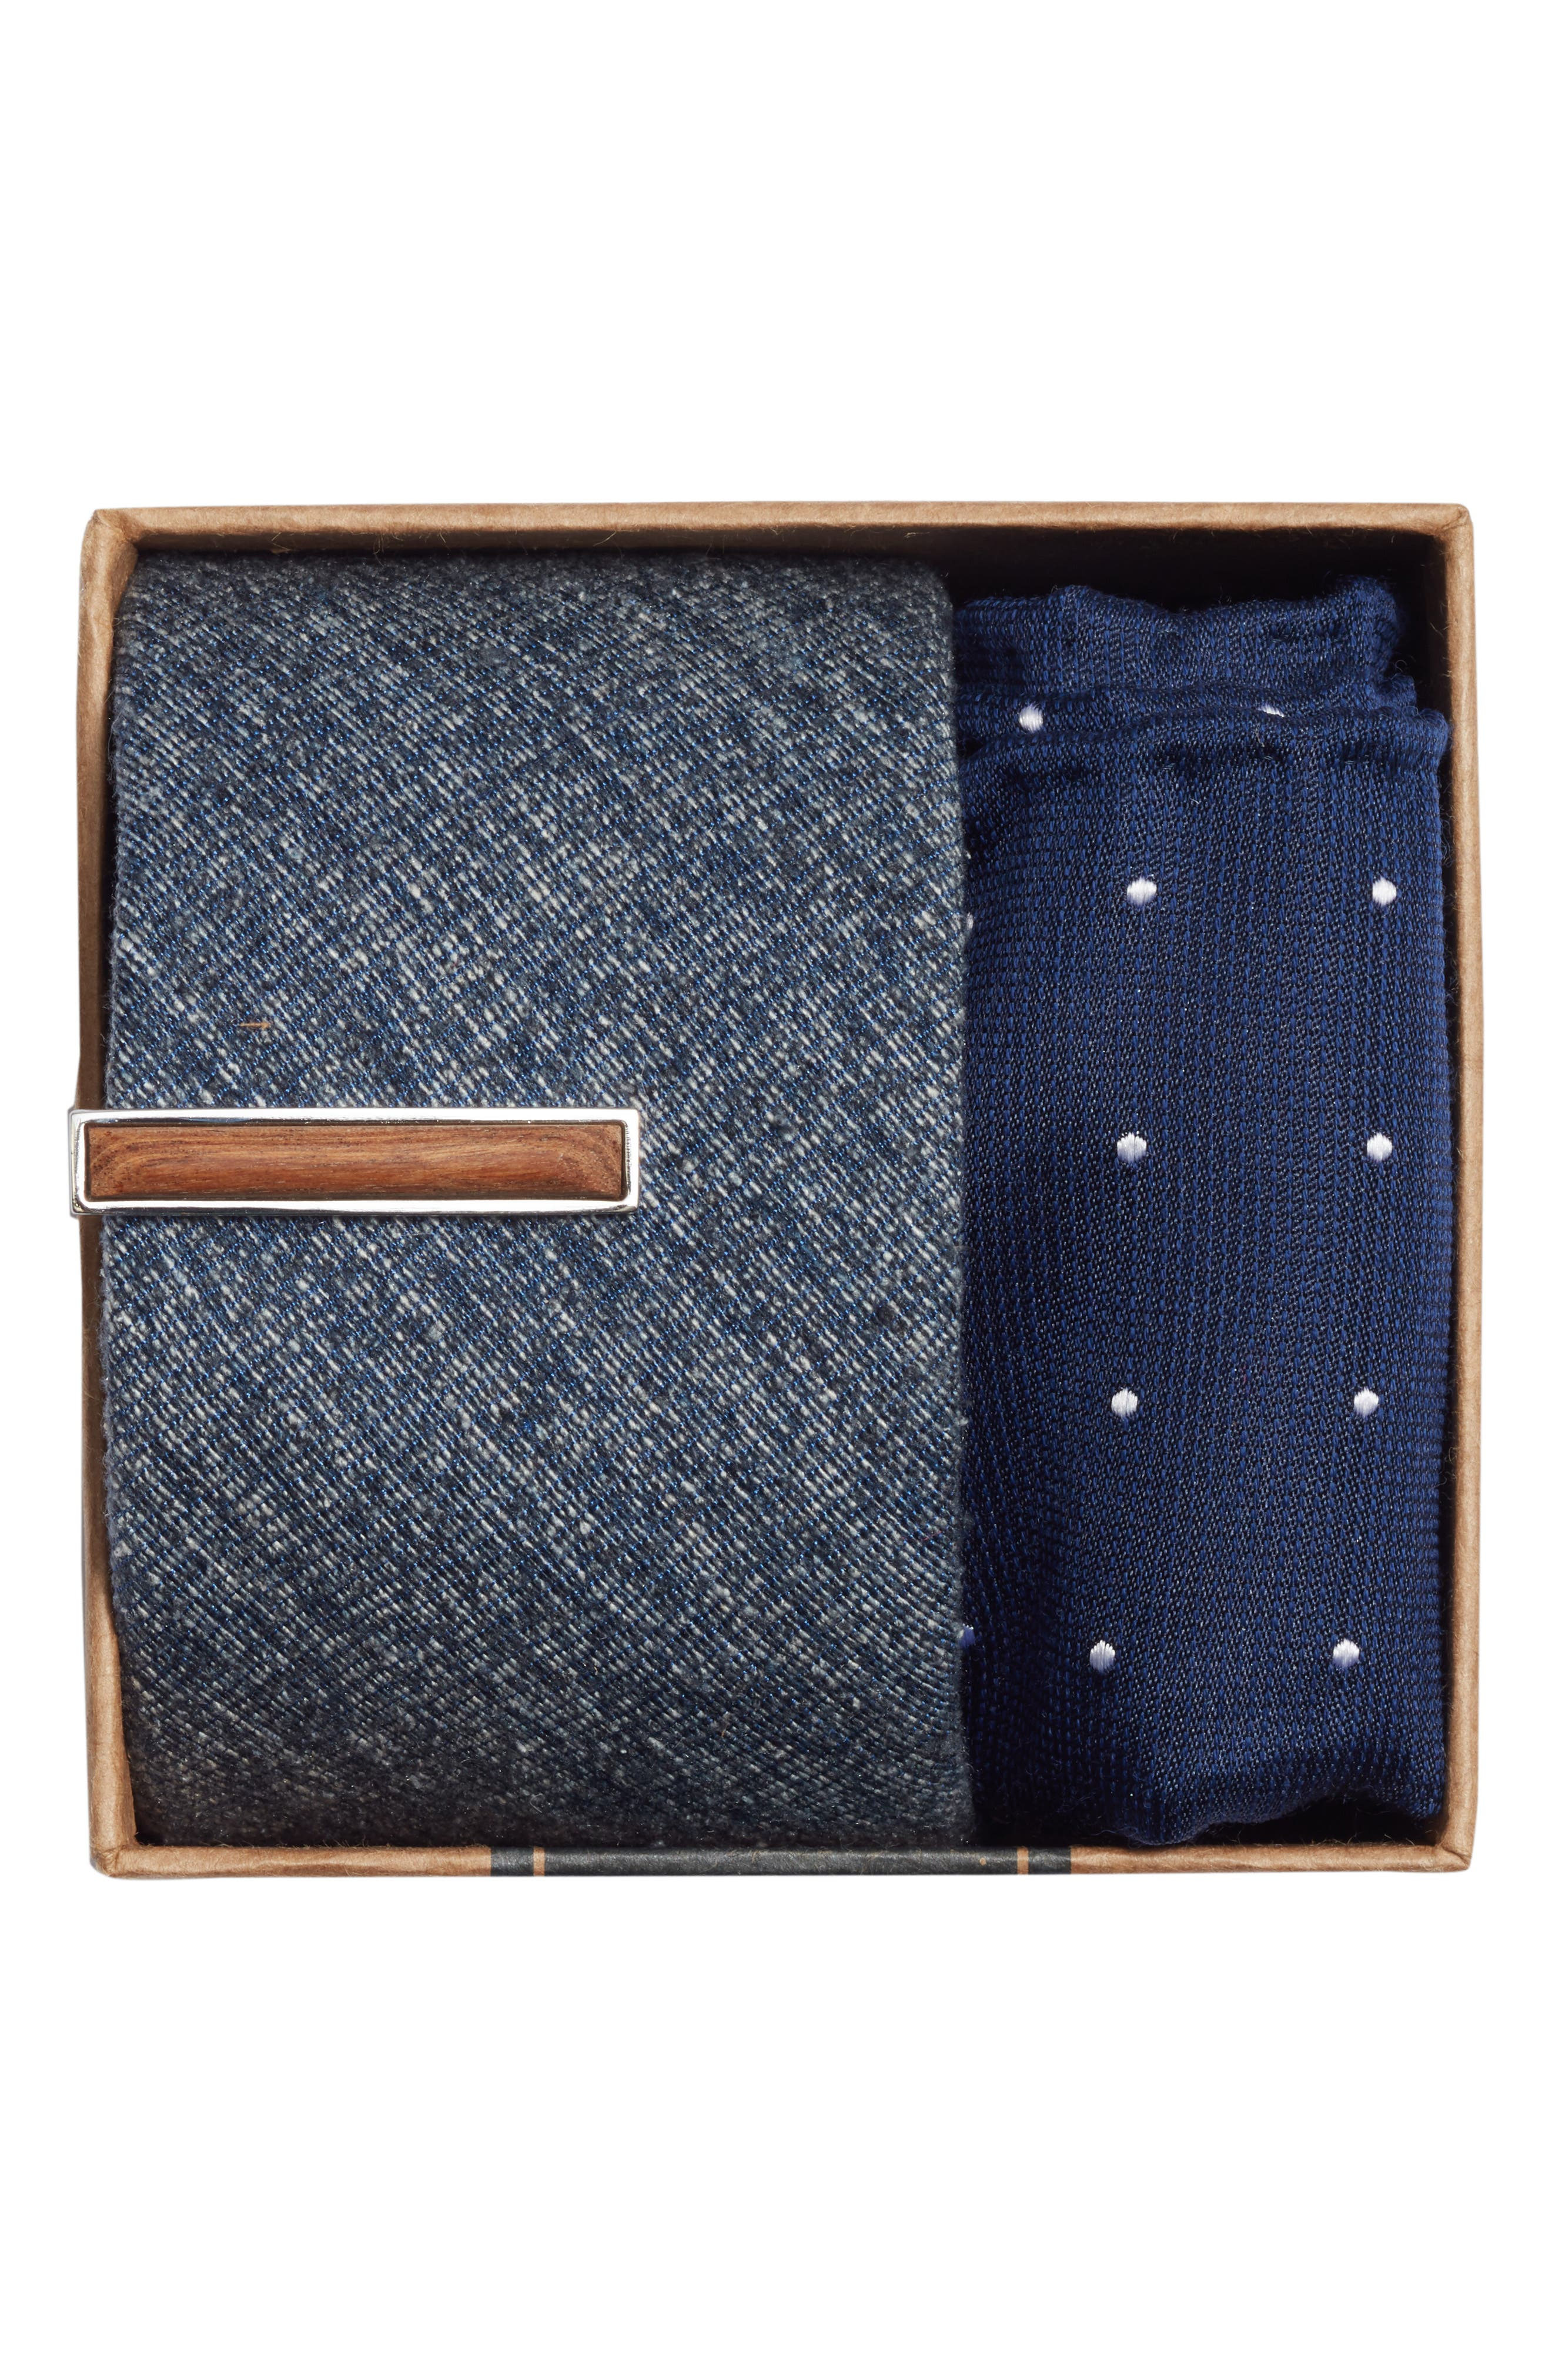 West Ridge Solid 3-Piece Skinny Tie Style Box,                             Alternate thumbnail 2, color,                             Navy